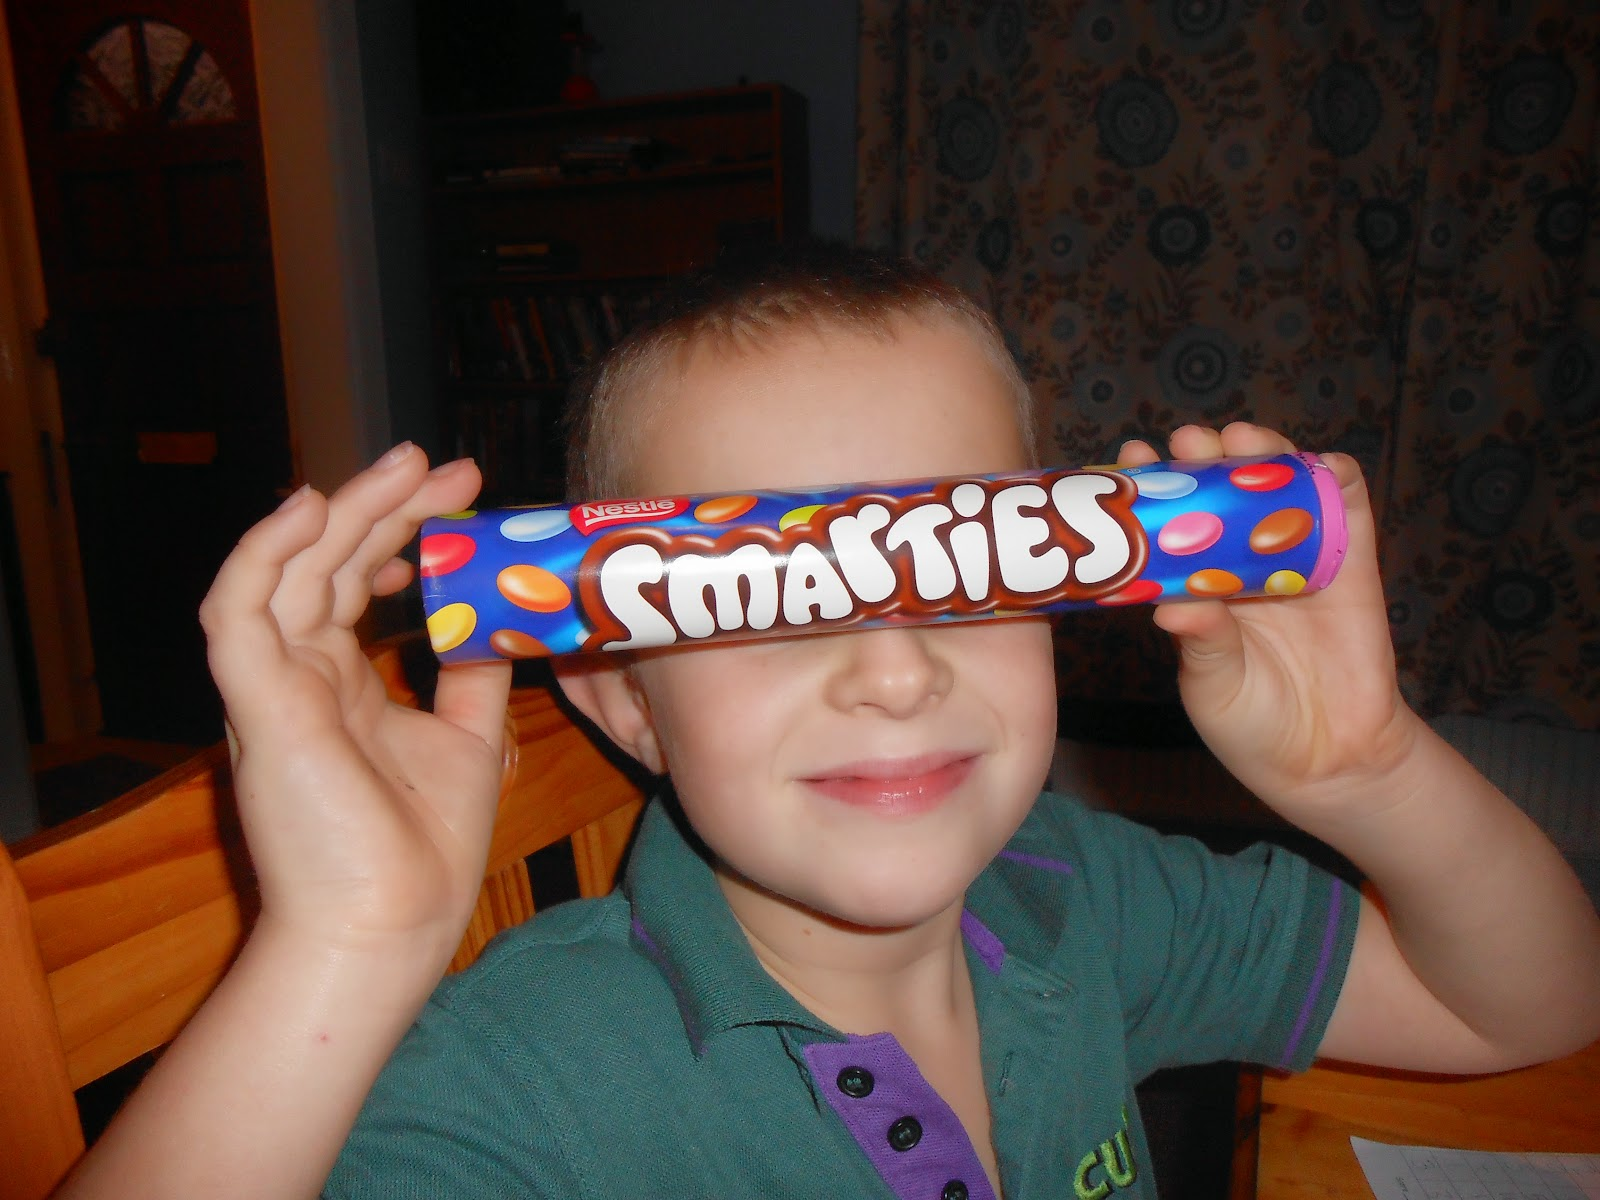 accelerated reading class prize large smarties tube